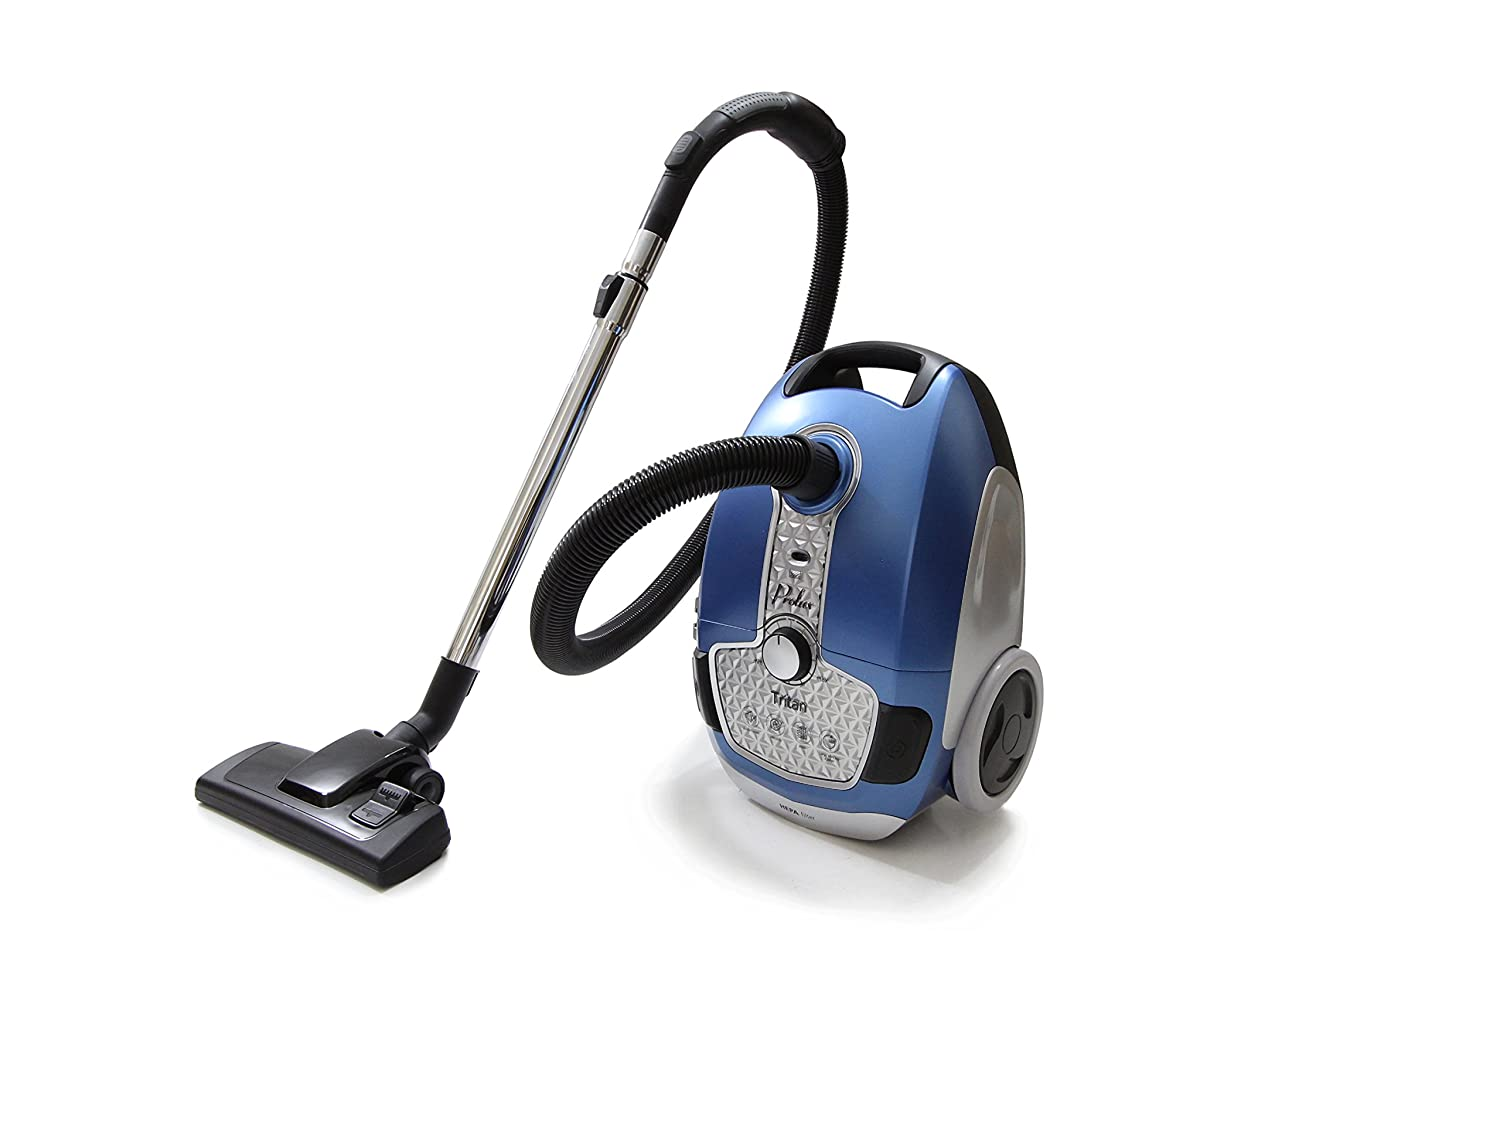 7 Best Canister Vacuums Of 2020 For All Types Of Floors